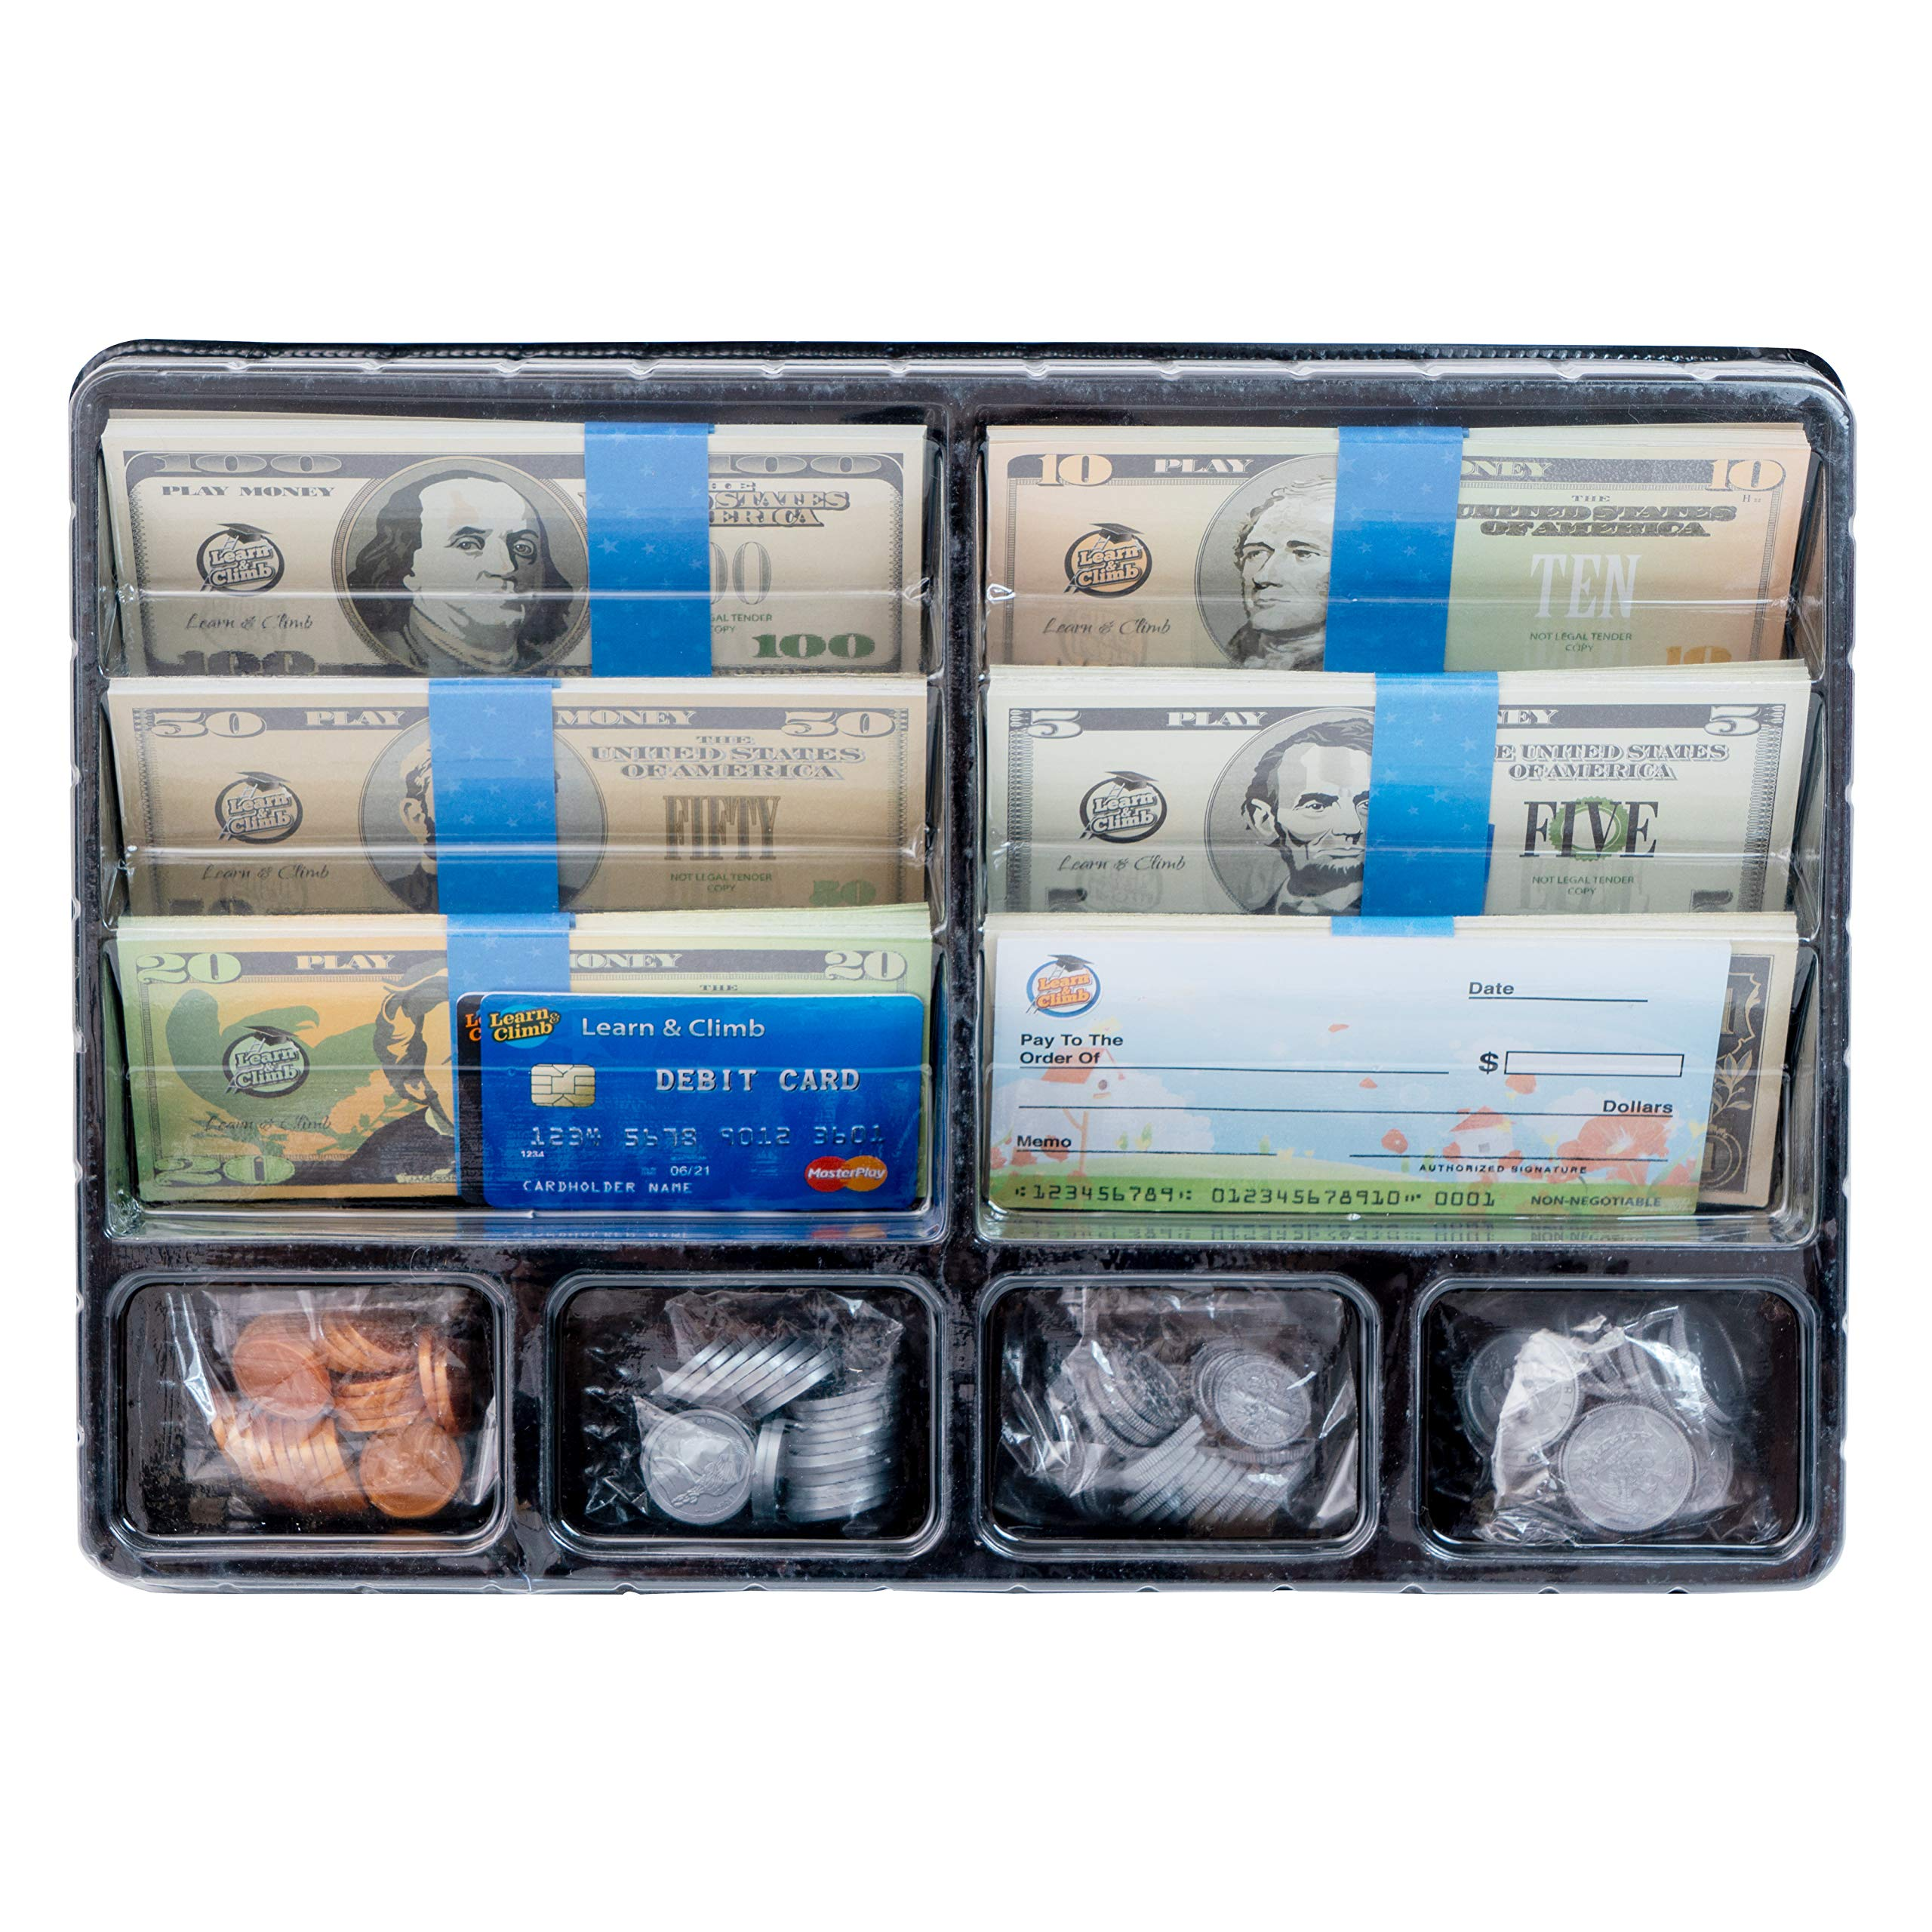 Learn & Climb Play Money Set for Kids - Realistic Dollar Bills, Coins, Credit & Debit Cards & Checkbook. Add-on for Pretend Play Cash Register